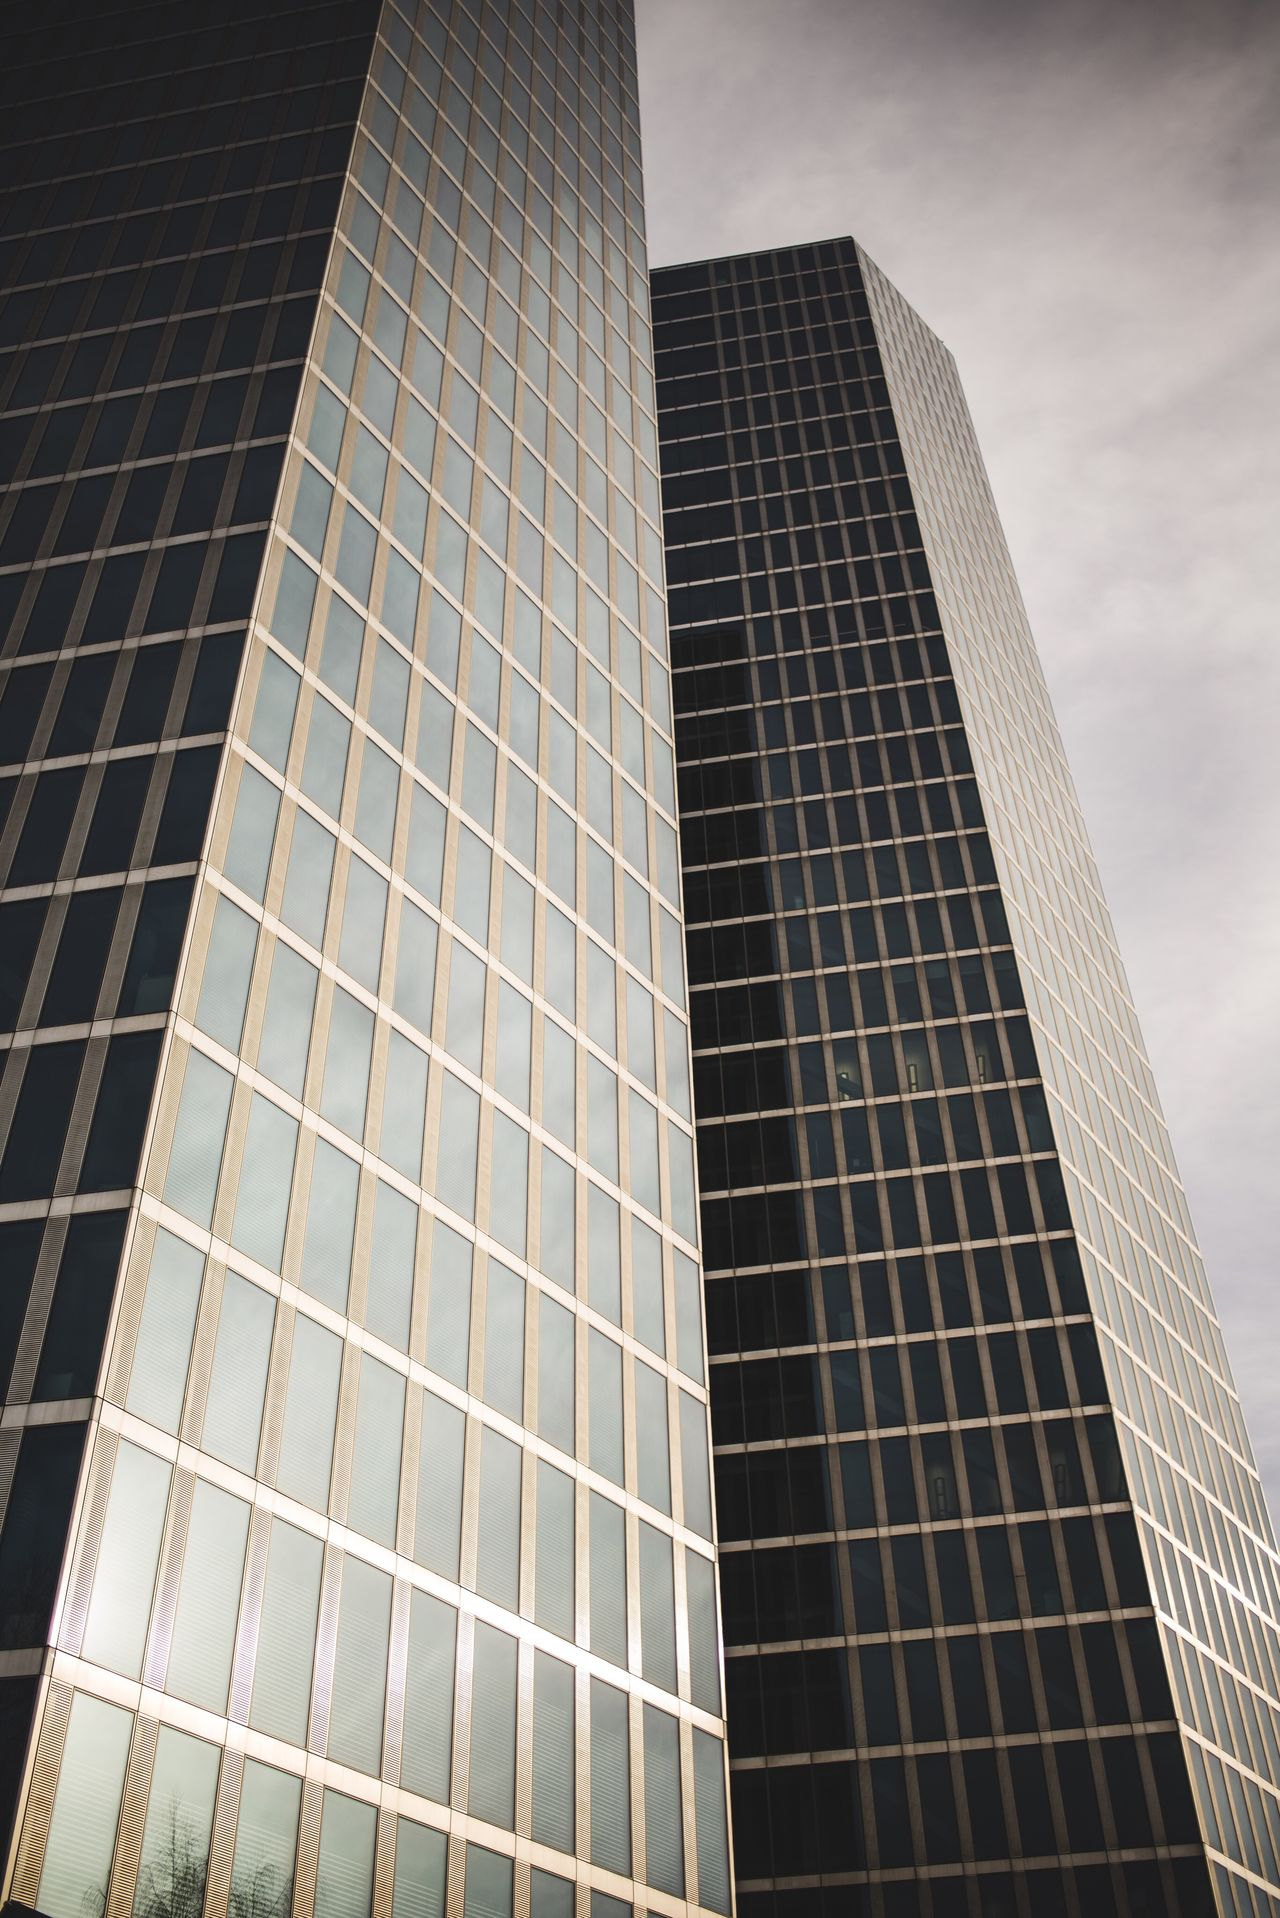 Building Architecture Building Exterior Built Structure Skyscraper Low Angle View City Modern Reflection Tower No People Tall Outdoors Day Sky Office Block Art Deco